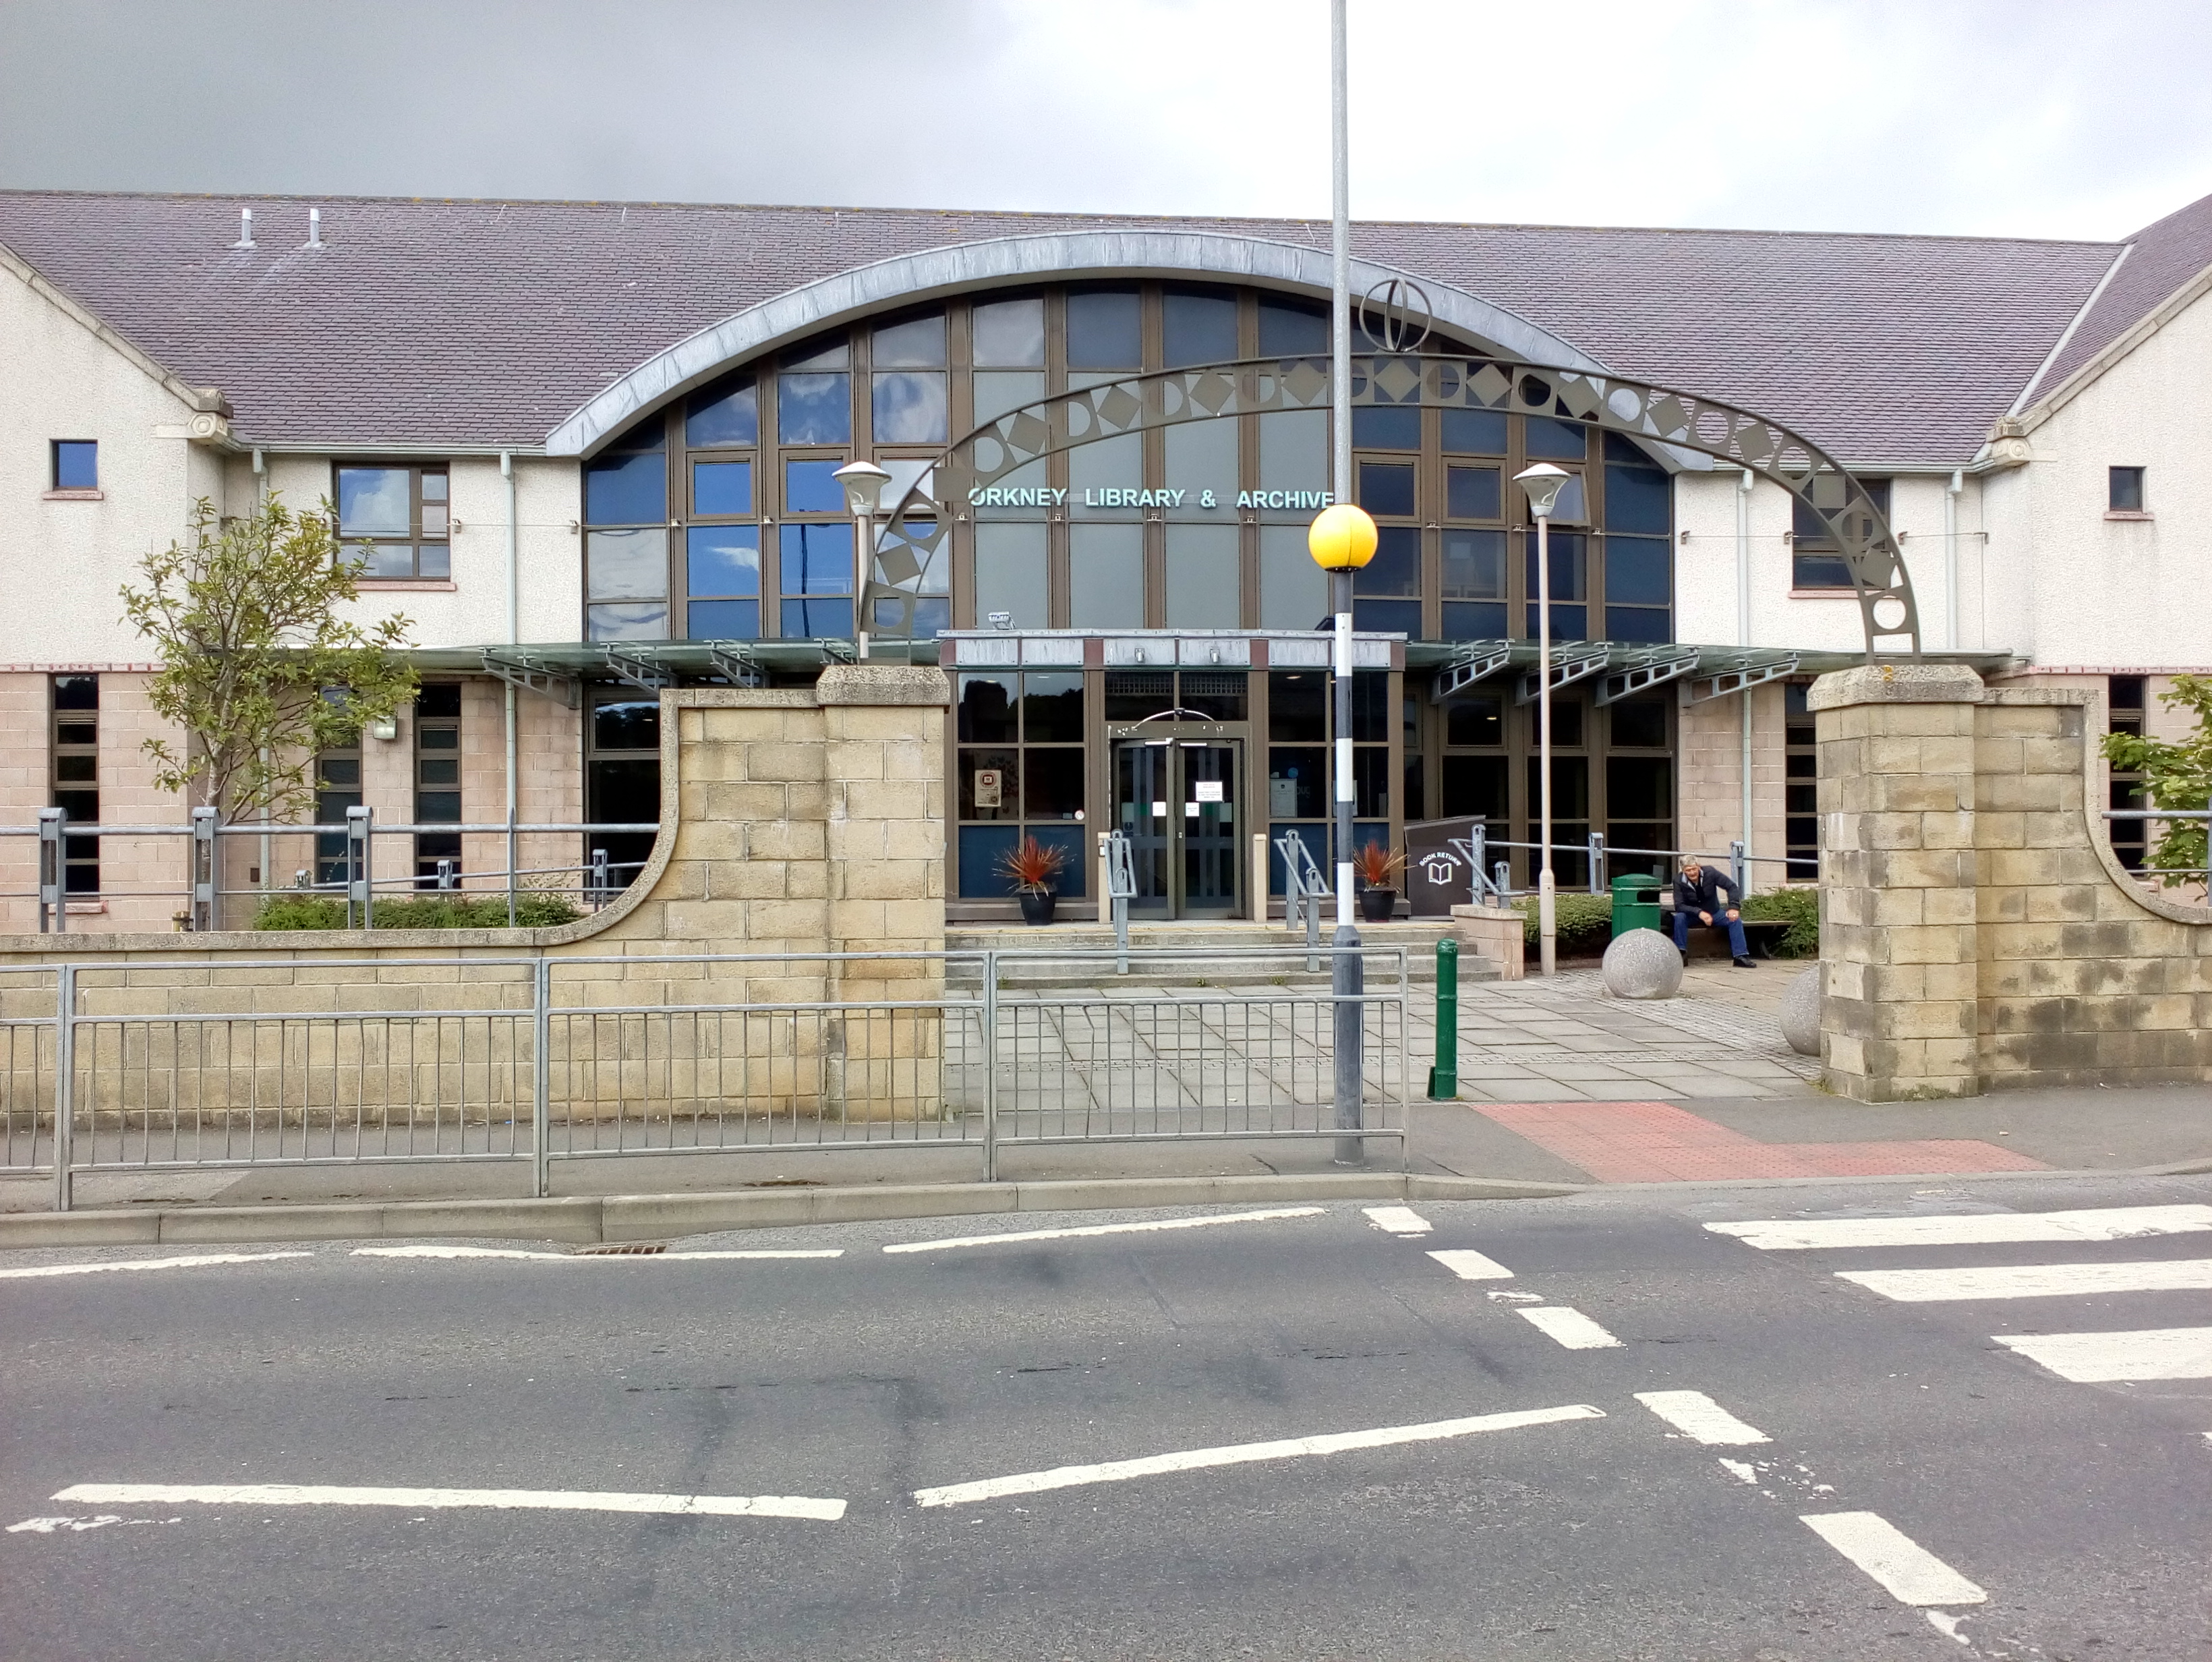 orkney library and archive in kirkwall.jpg